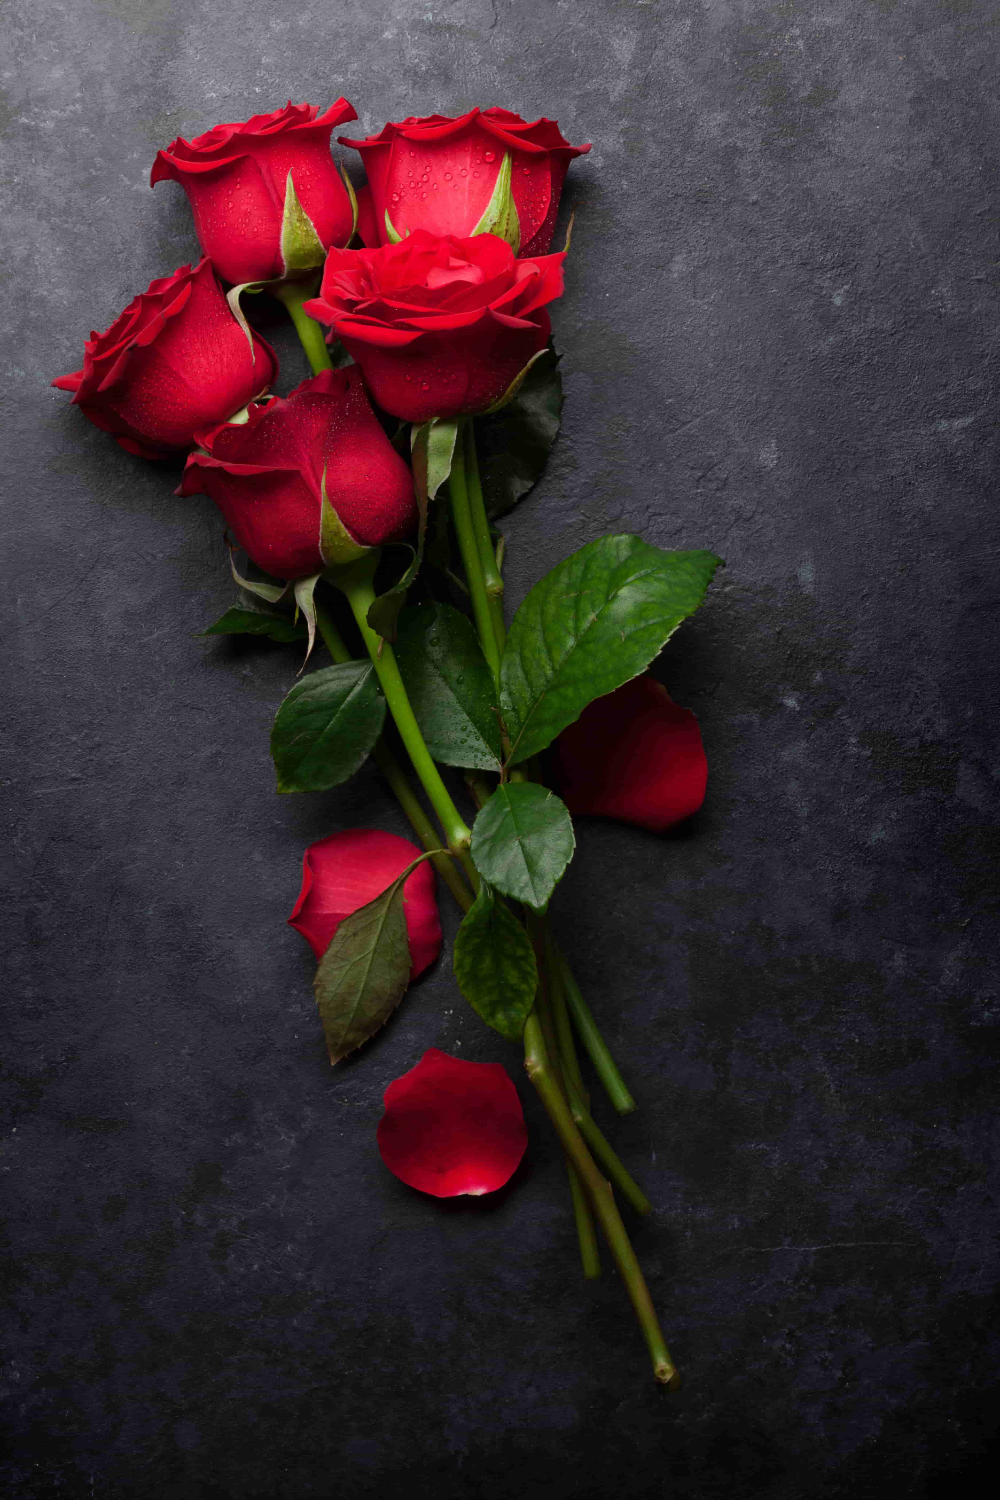 Nice Rose Flower Images For Free Downlaod Redroses Rose Rosephotography In 2020 Rose Flower Wallpaper Beautiful Rose Flowers Red Roses Wallpaper